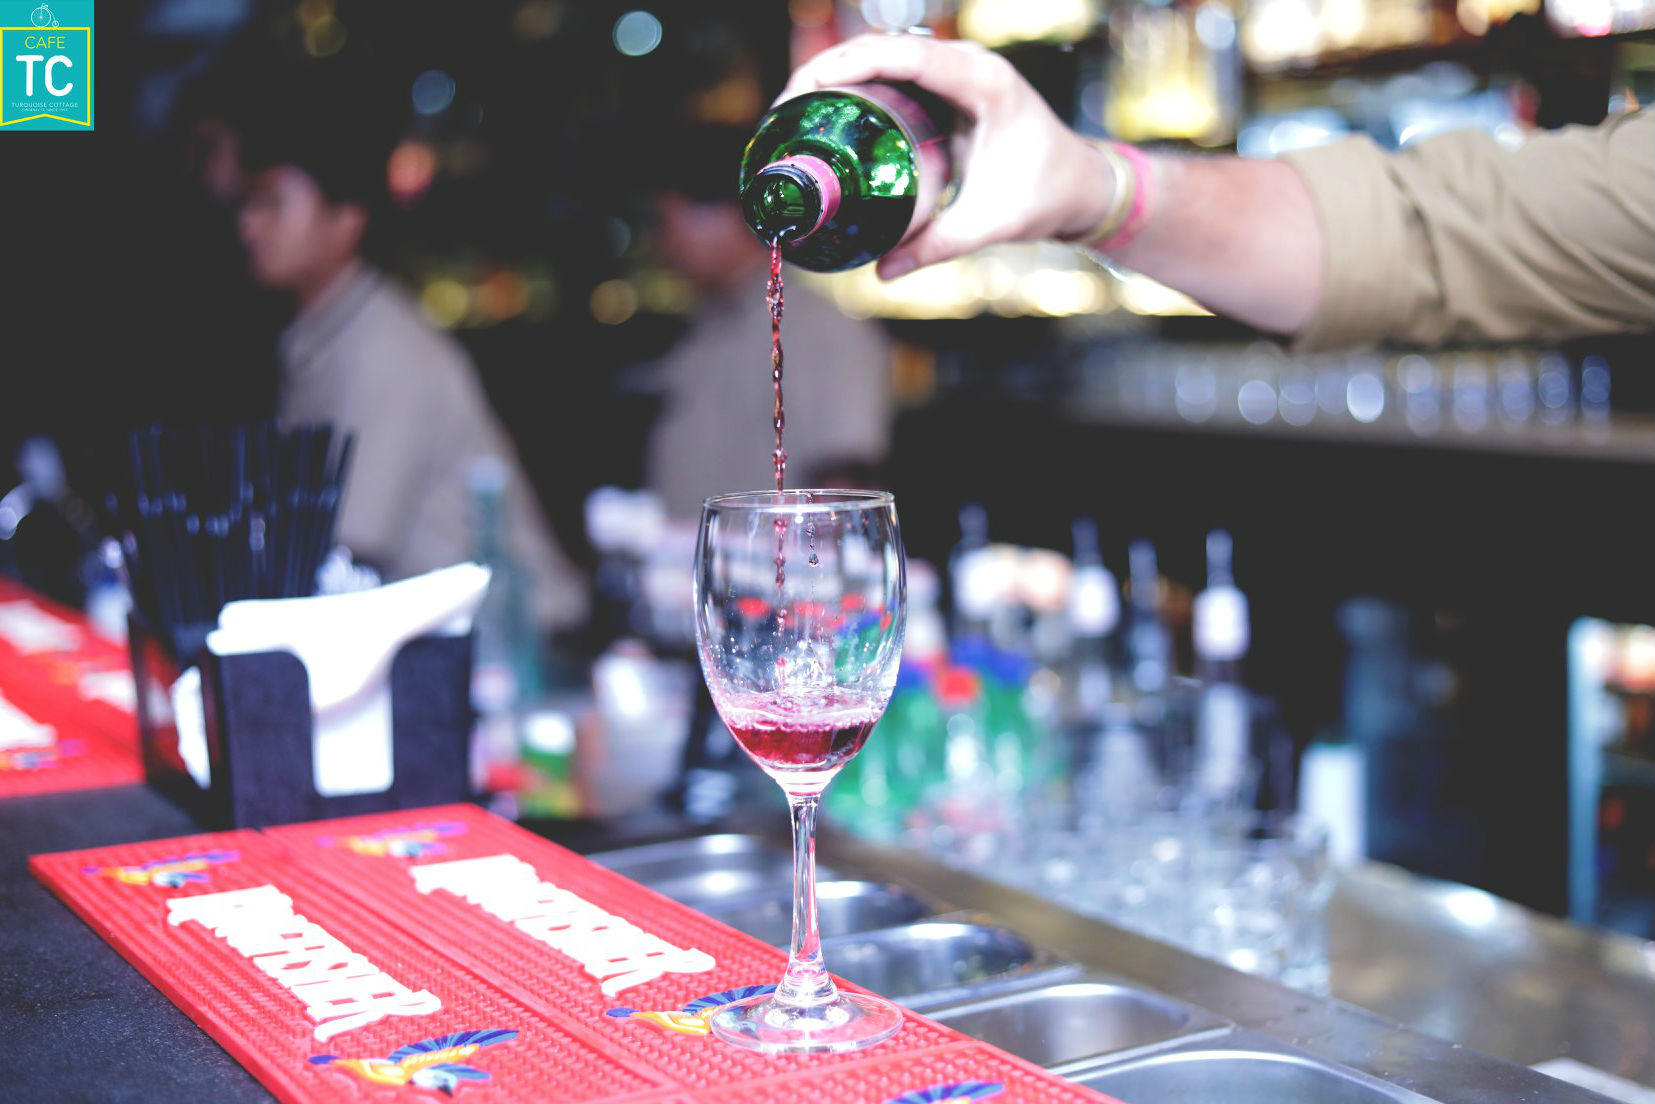 Delhi karaoke bars to hit for a perfect weekend | Times of